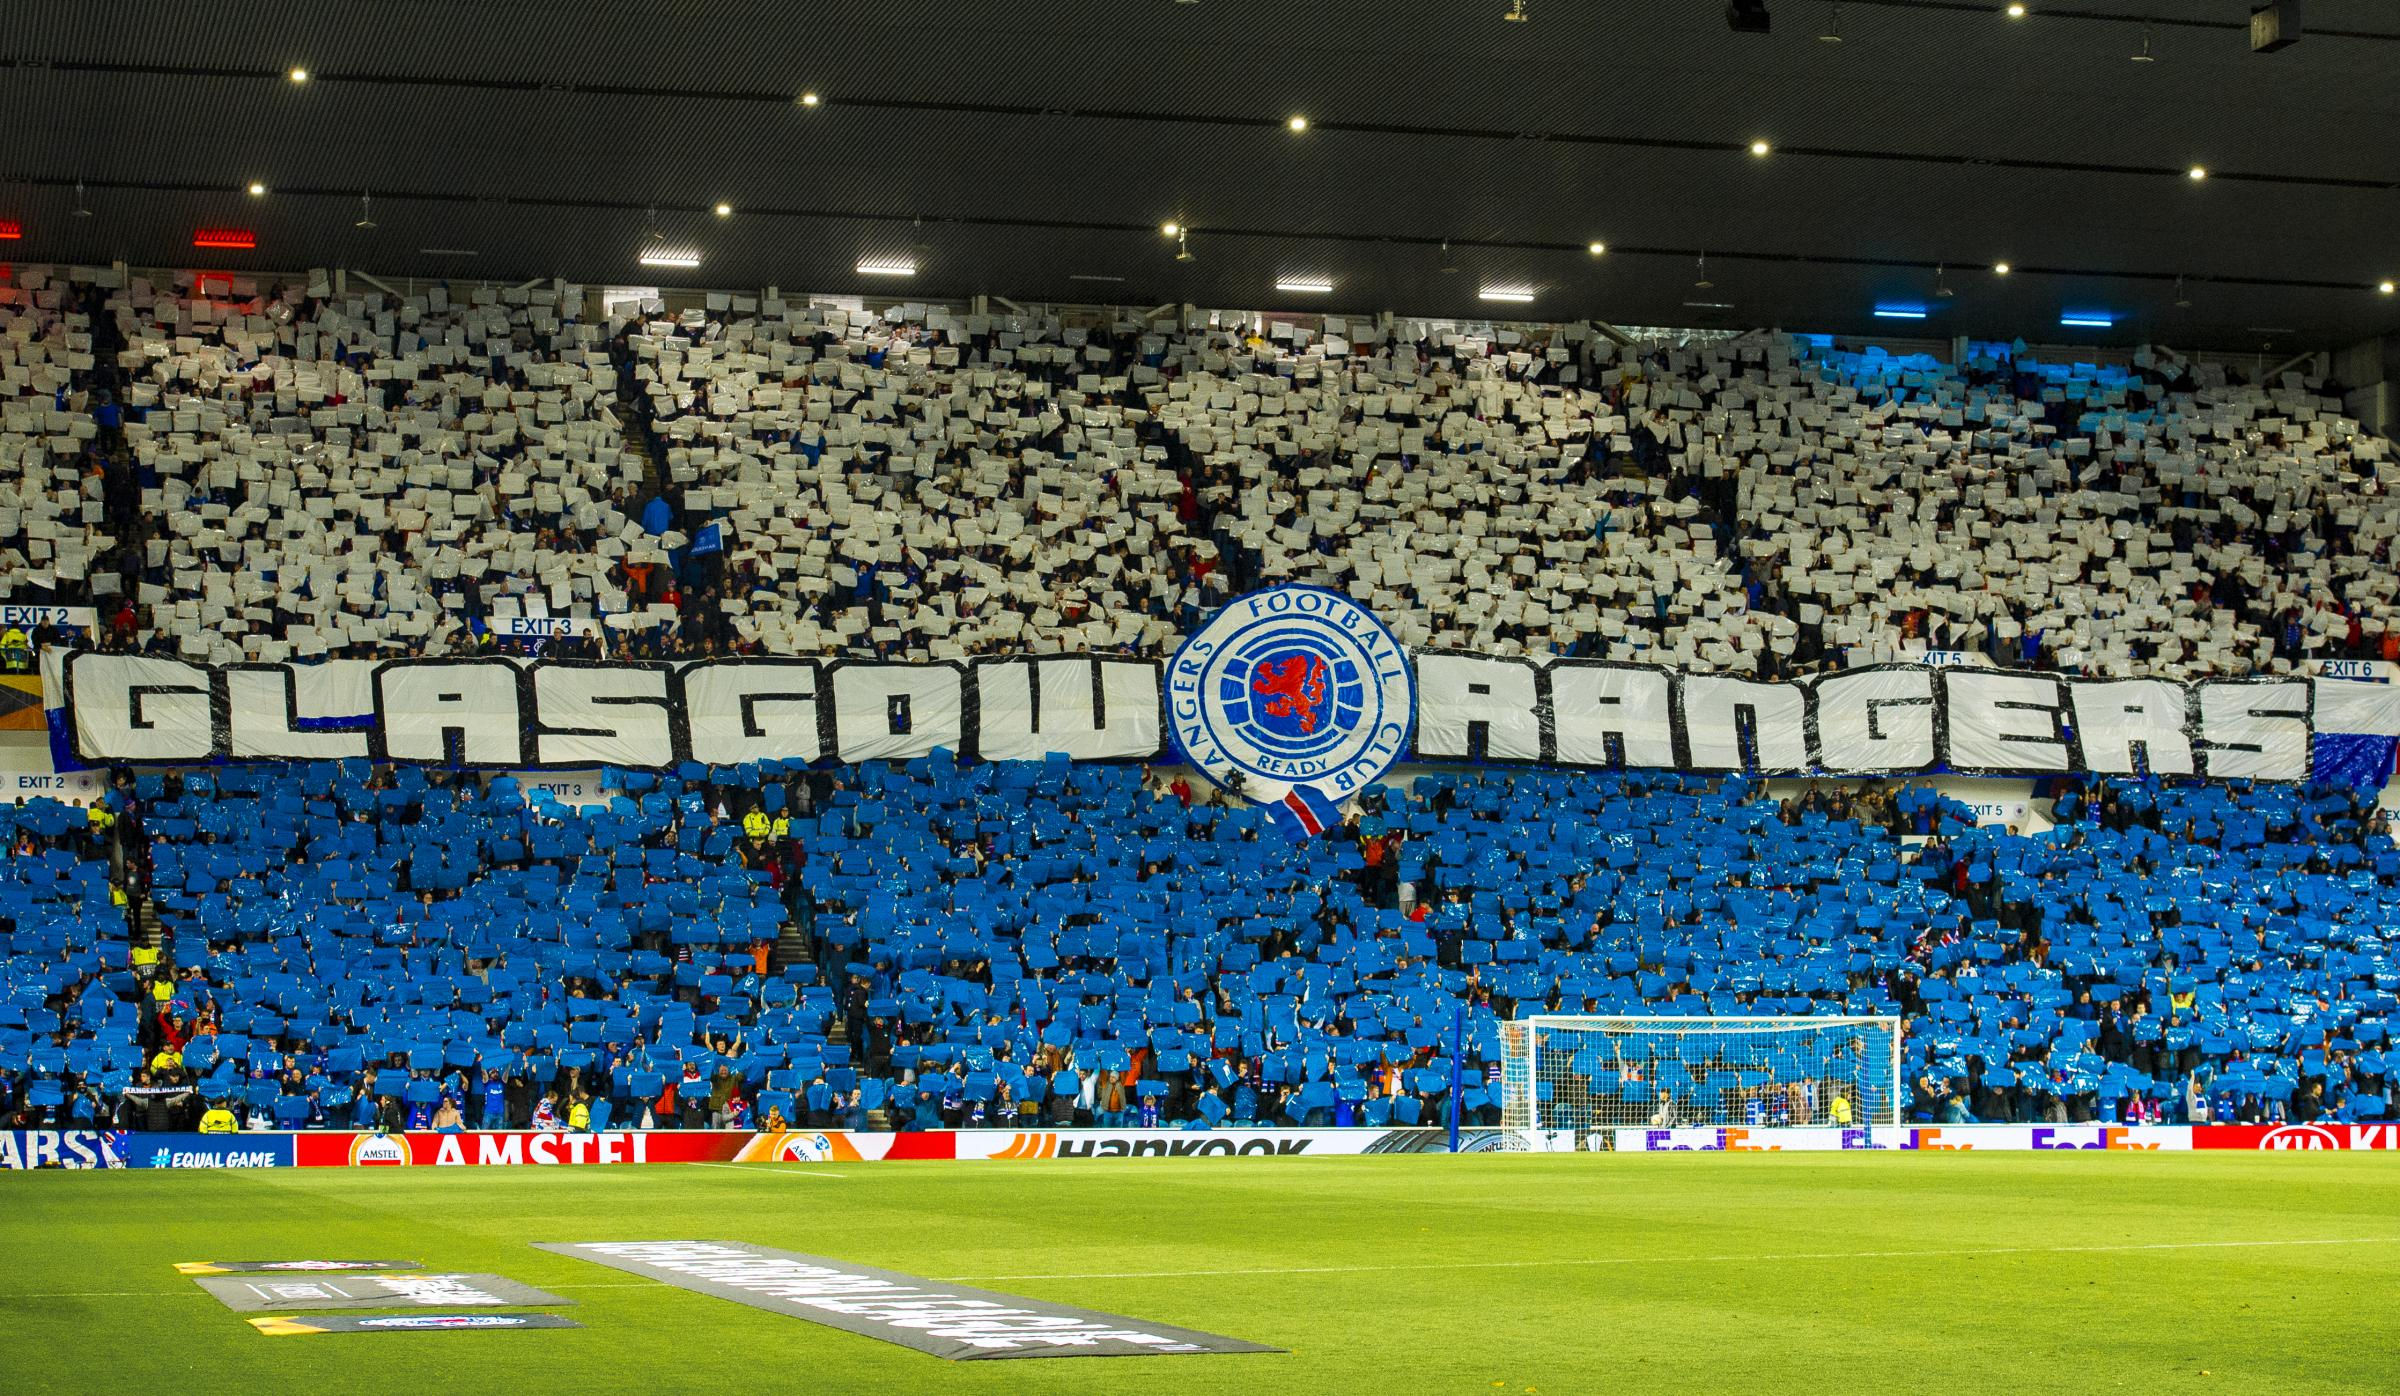 Rangers vs Malmo: Live stream, TV channel and kick-off time